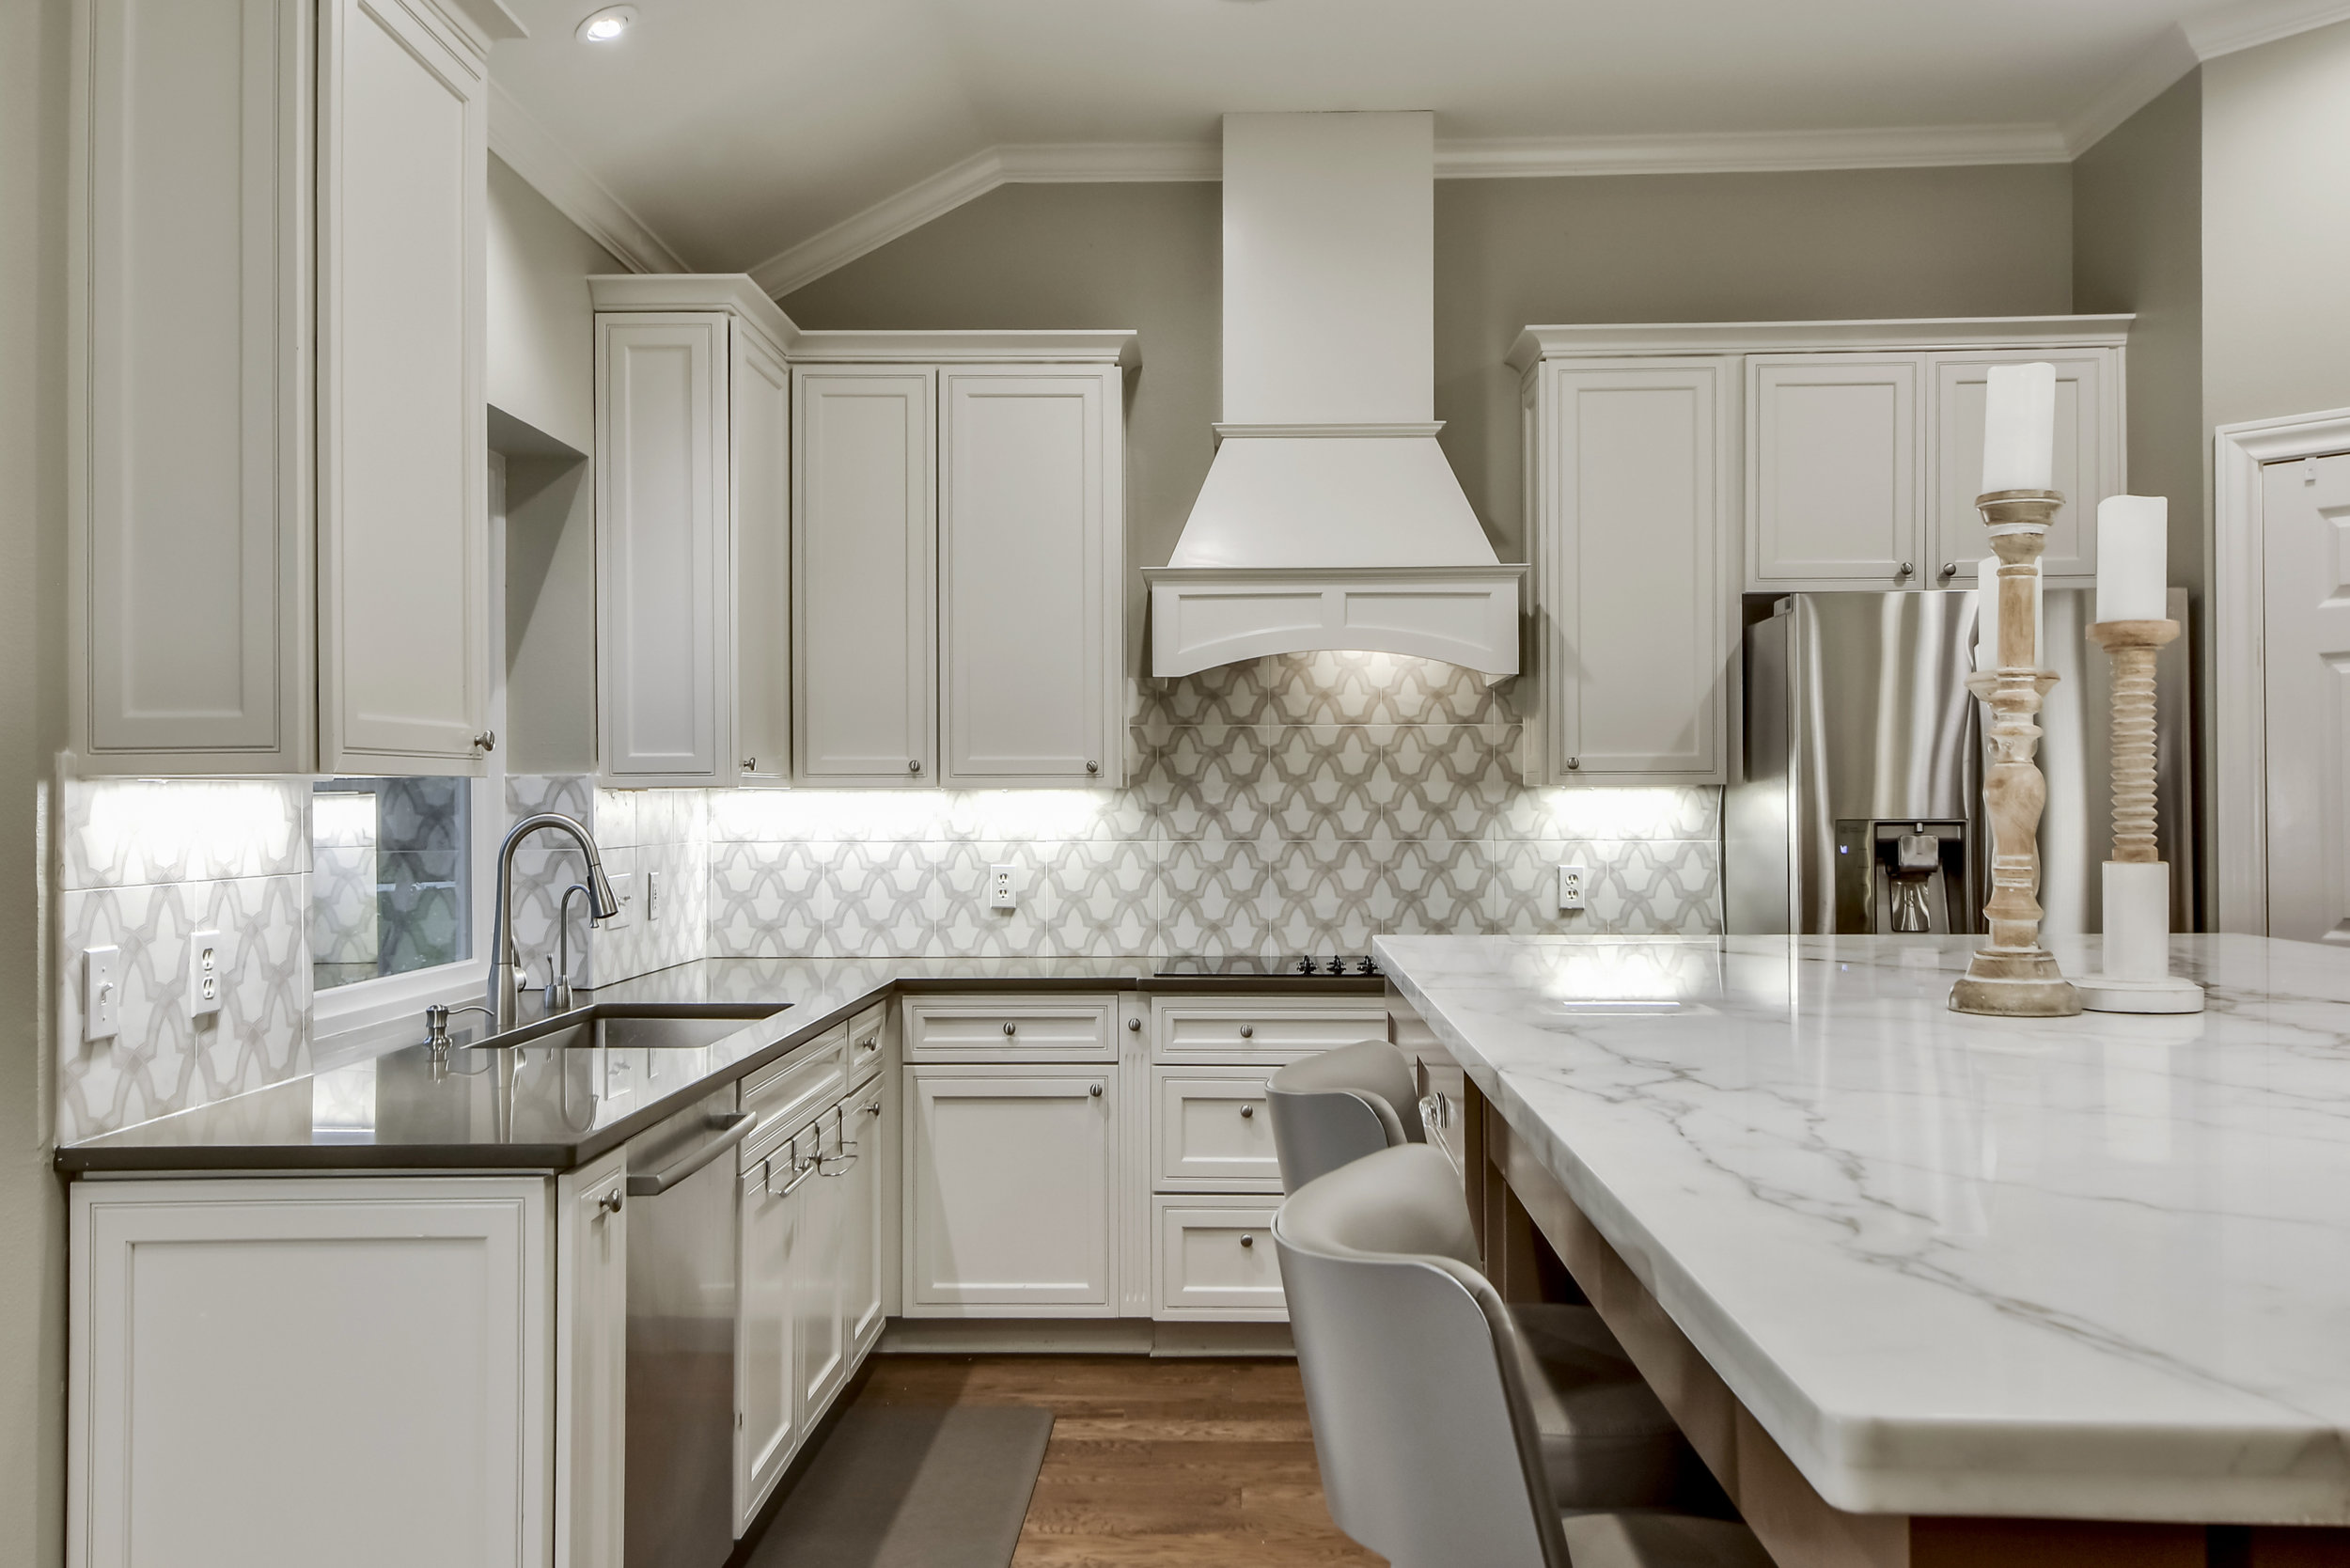 White Kitchen Interior Design with Beautiful Tile Backsplash